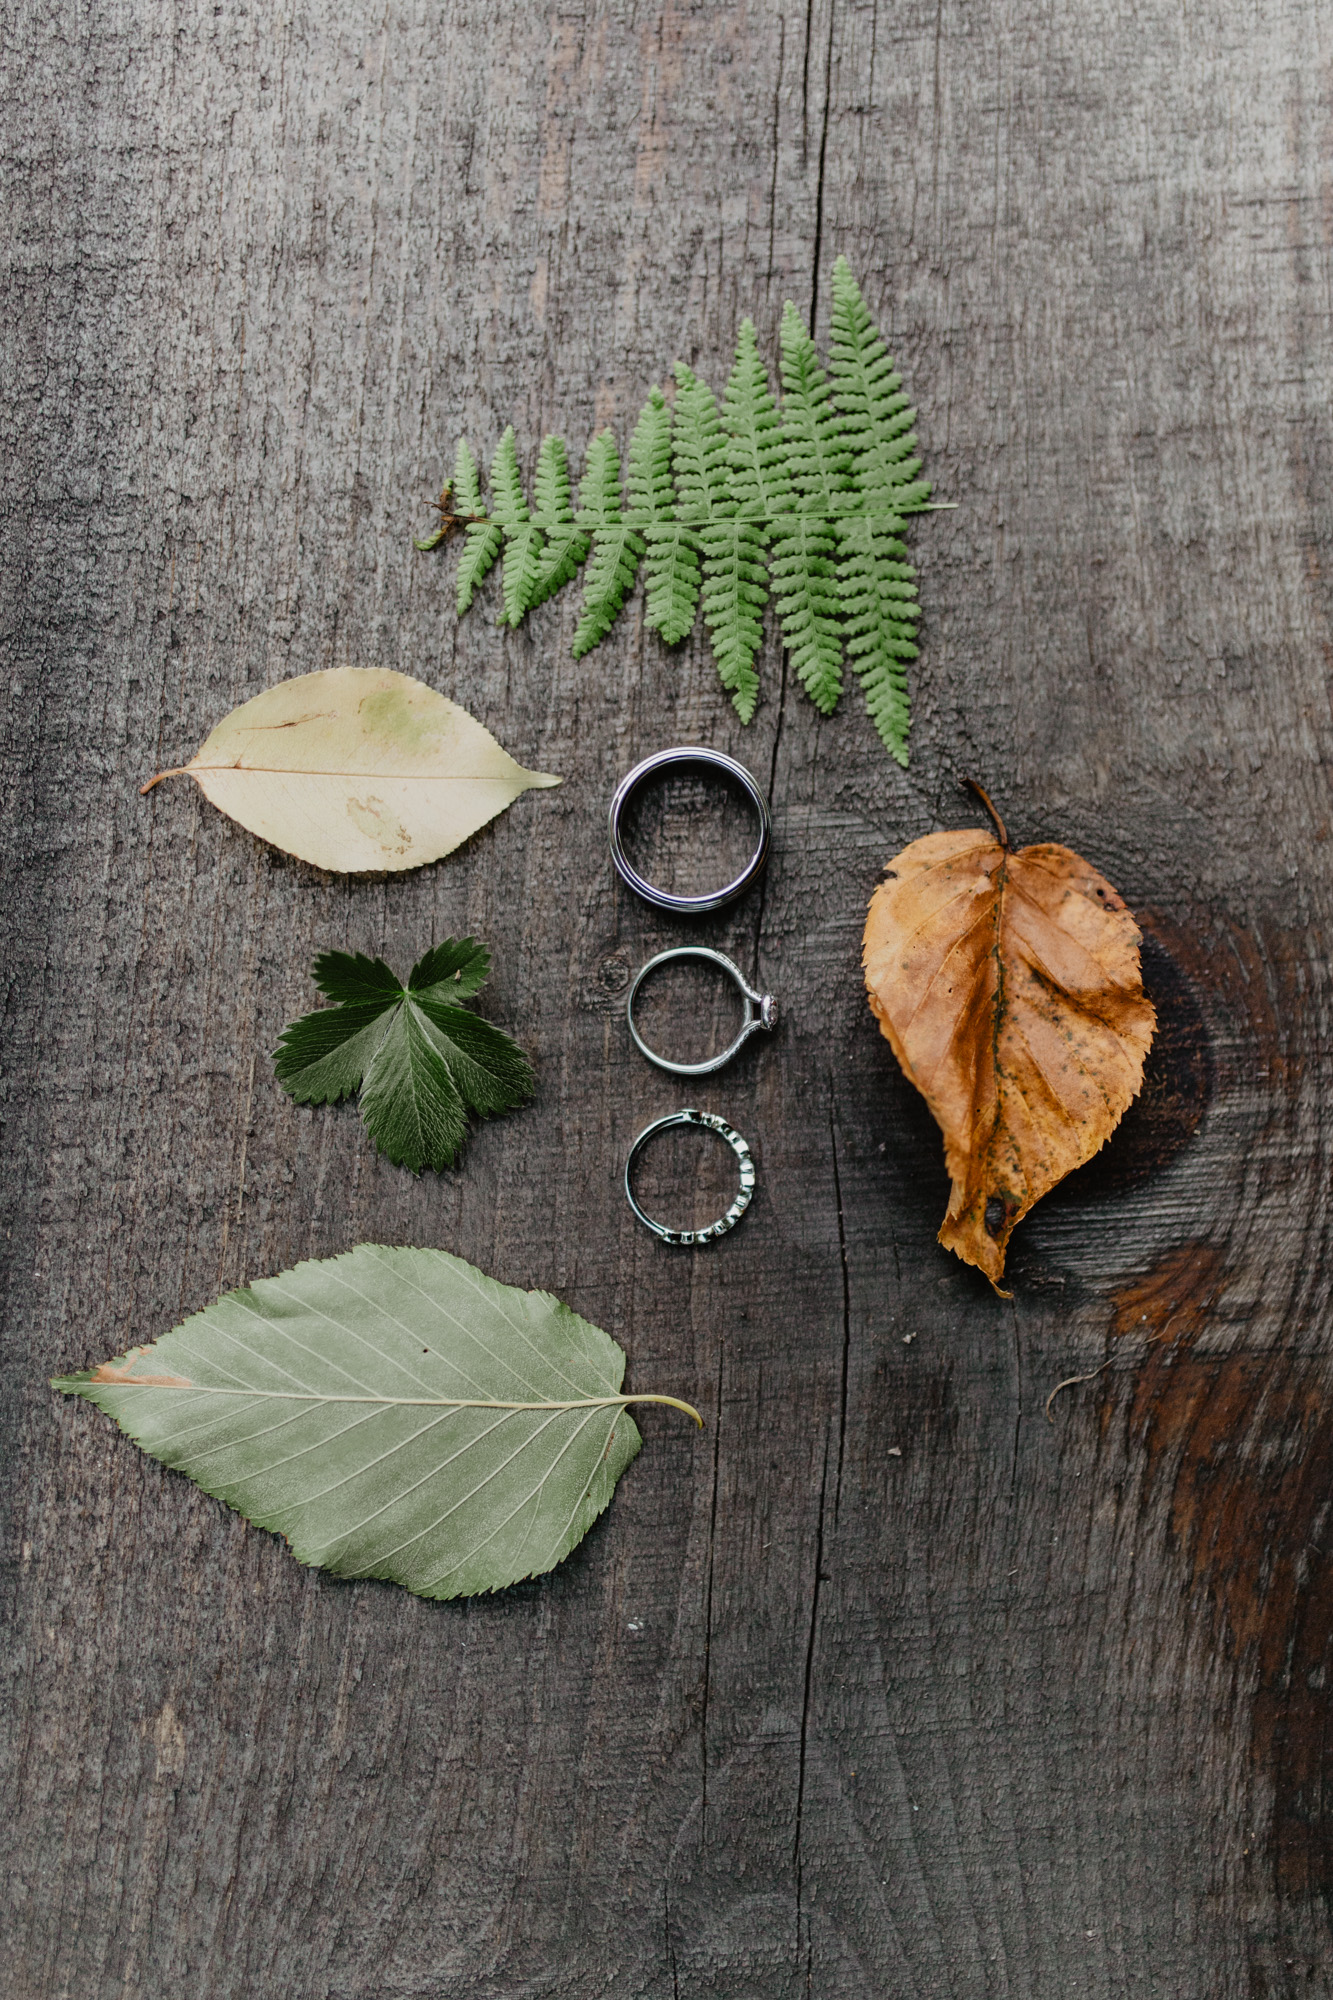 Wedding bands arranged with leaves